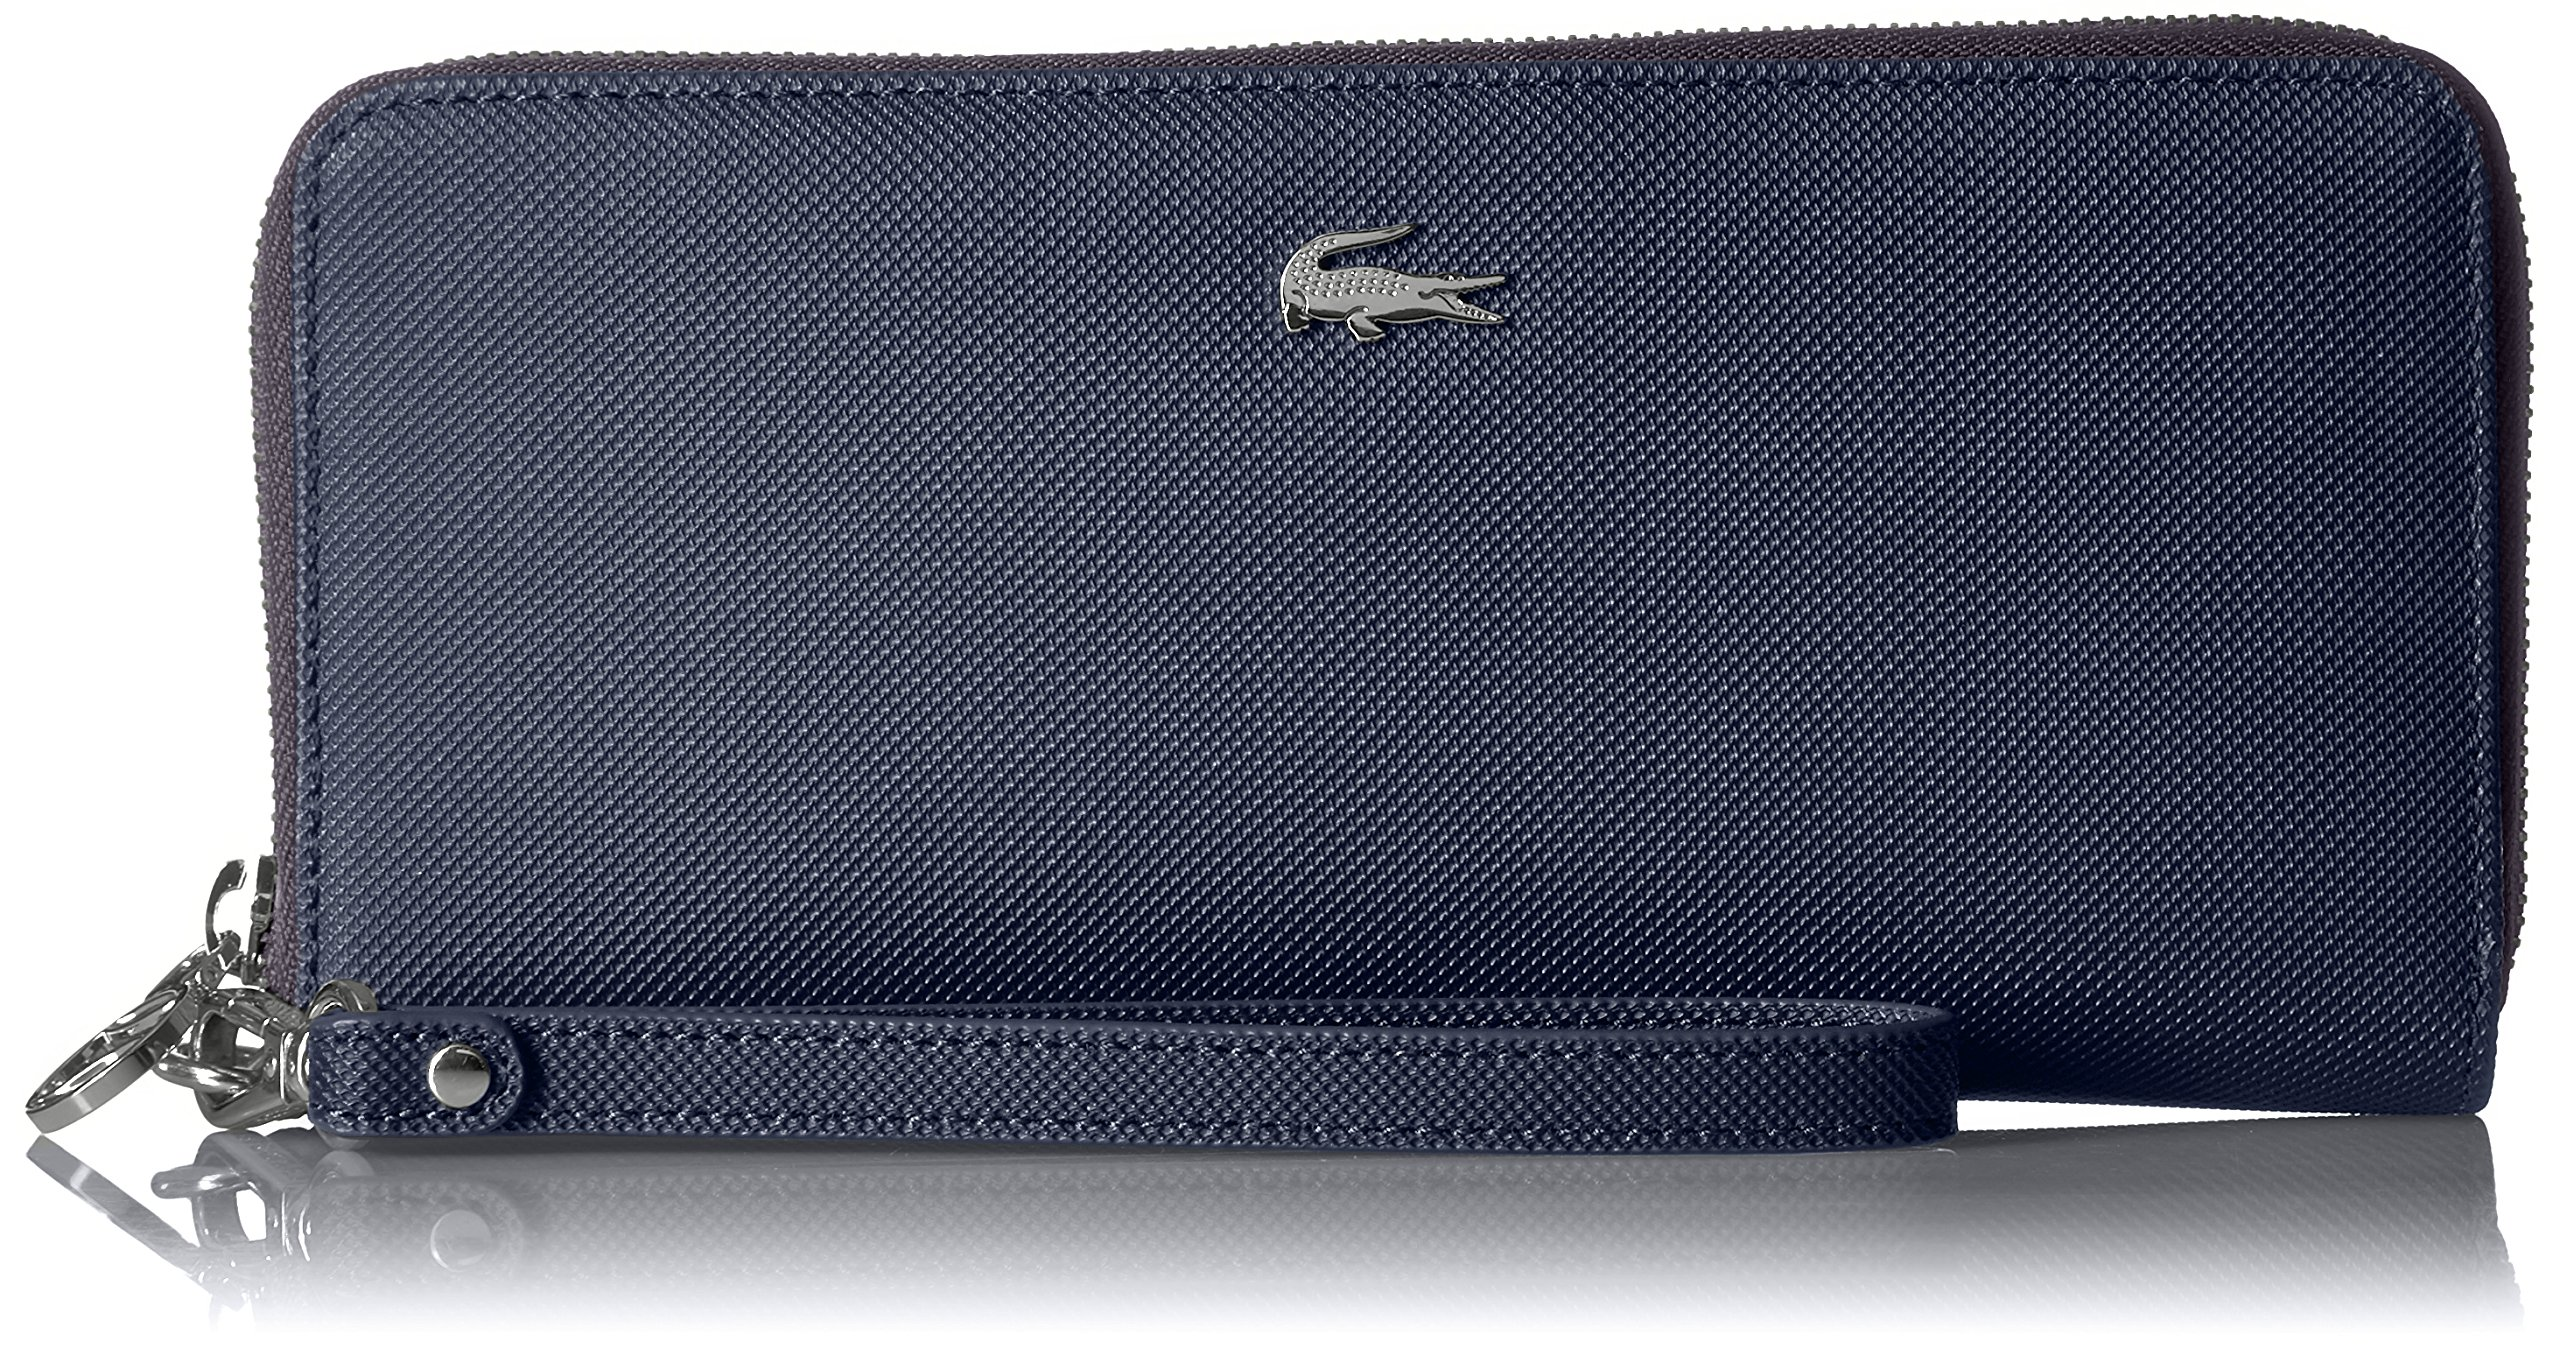 XLARGE WRISLET ZIP WALLET, NF2498DC Wallet, PEACOAT, One Size by Lacoste (Image #1)